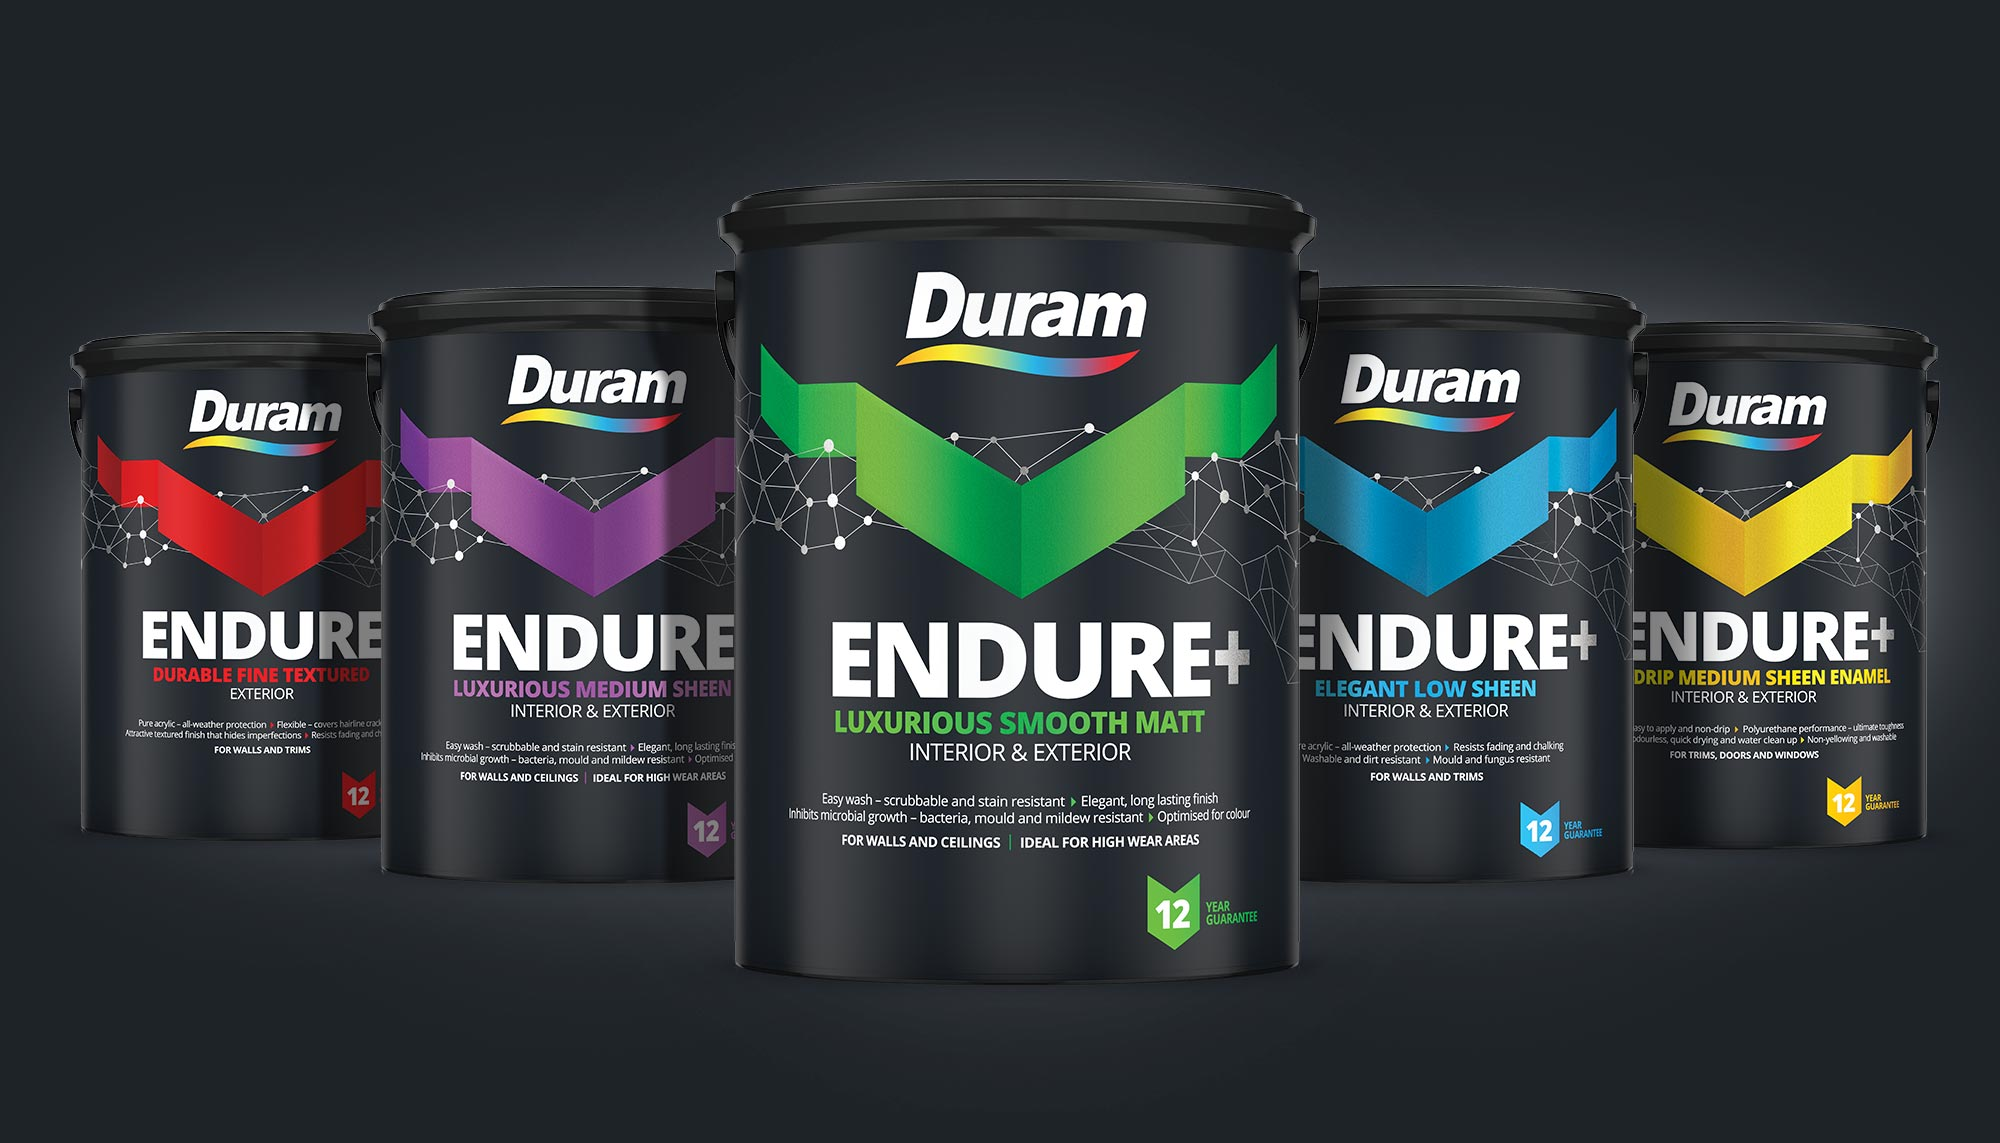 Endure+ Packaging Group Photo, Pack Design, Identity Design